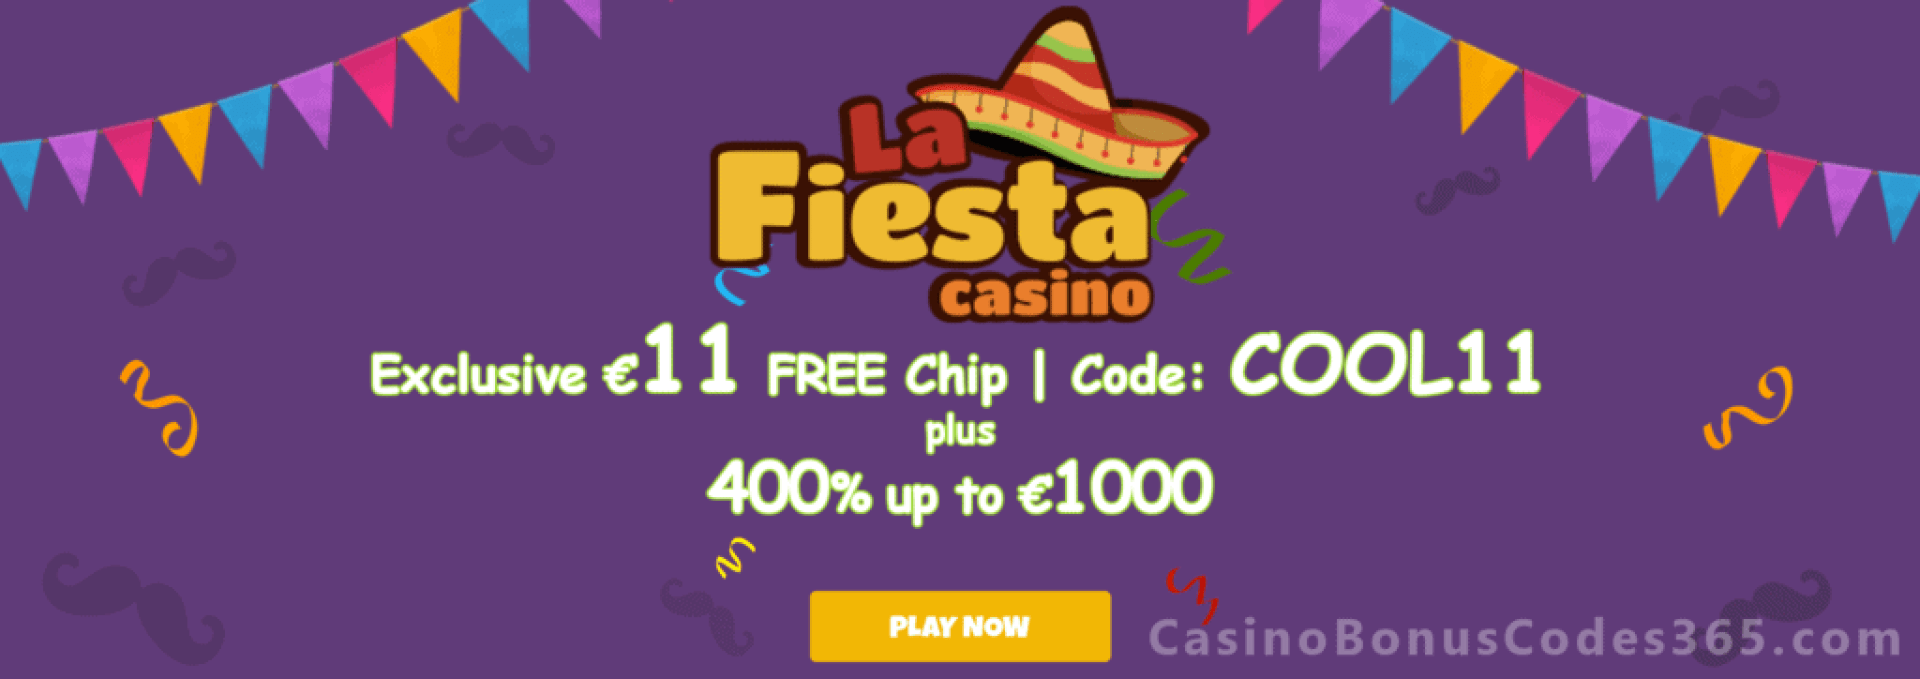 La Fiesta Casino Exclusive €11 Welcome FREE Chip Promo